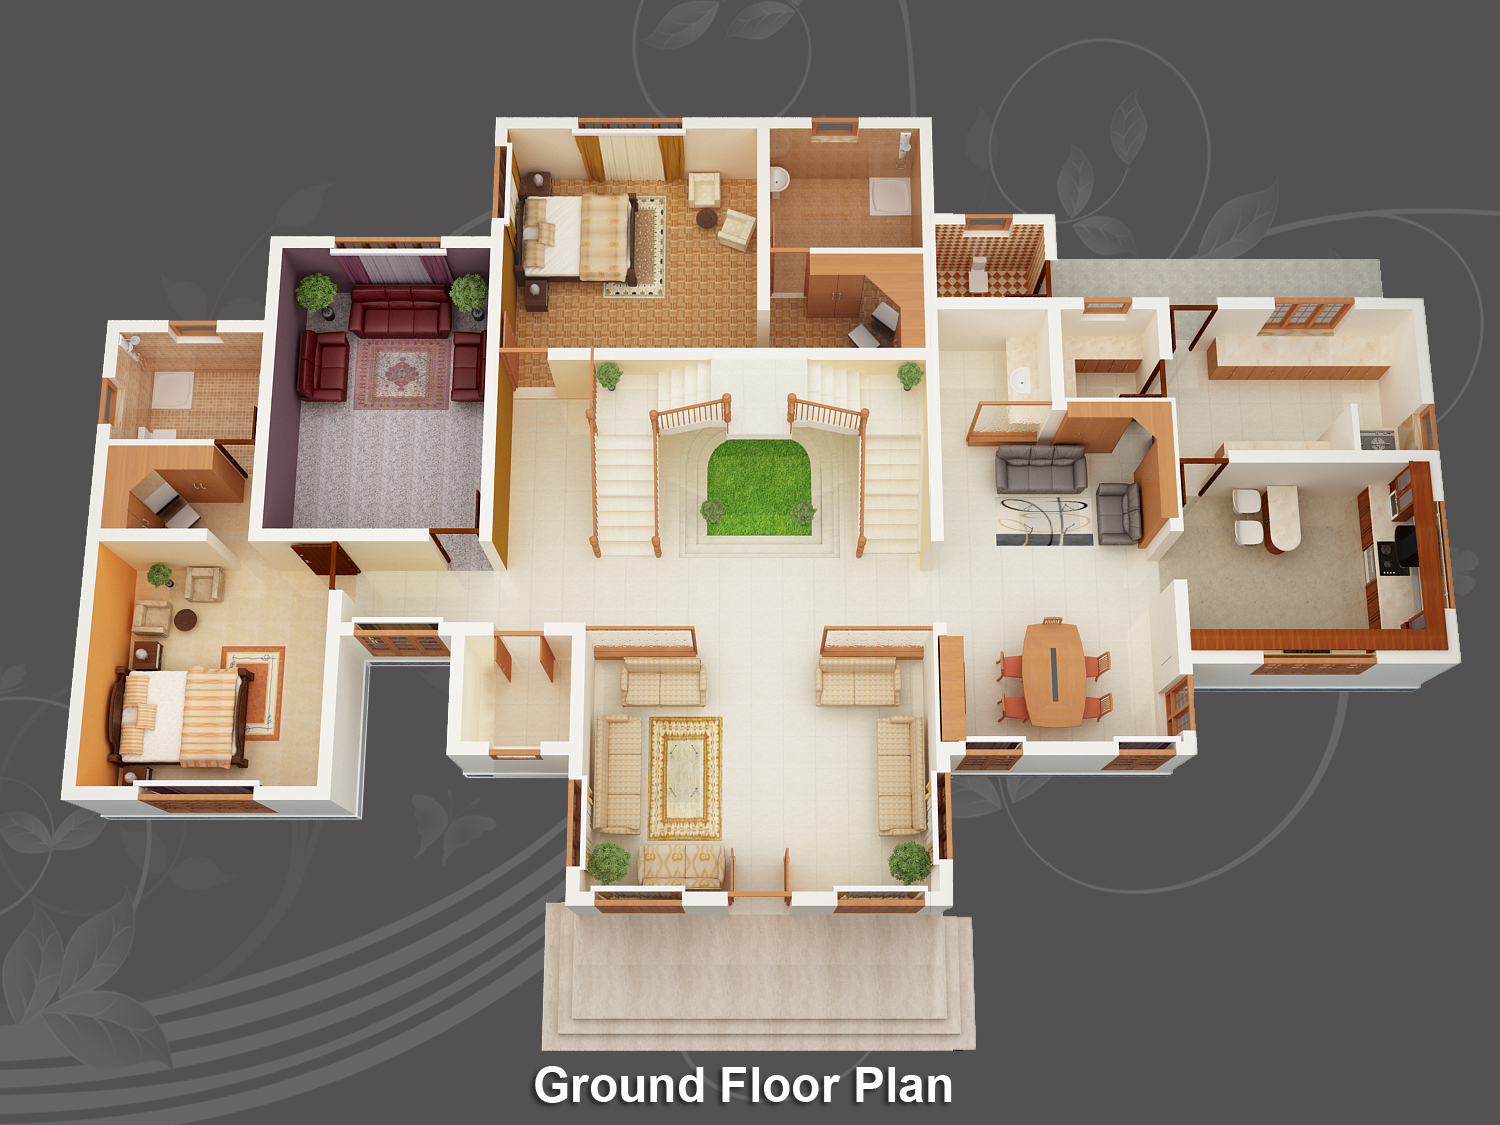 Evens construction pvt ltd 3d house plan 20 05 2011 3d house design drawings